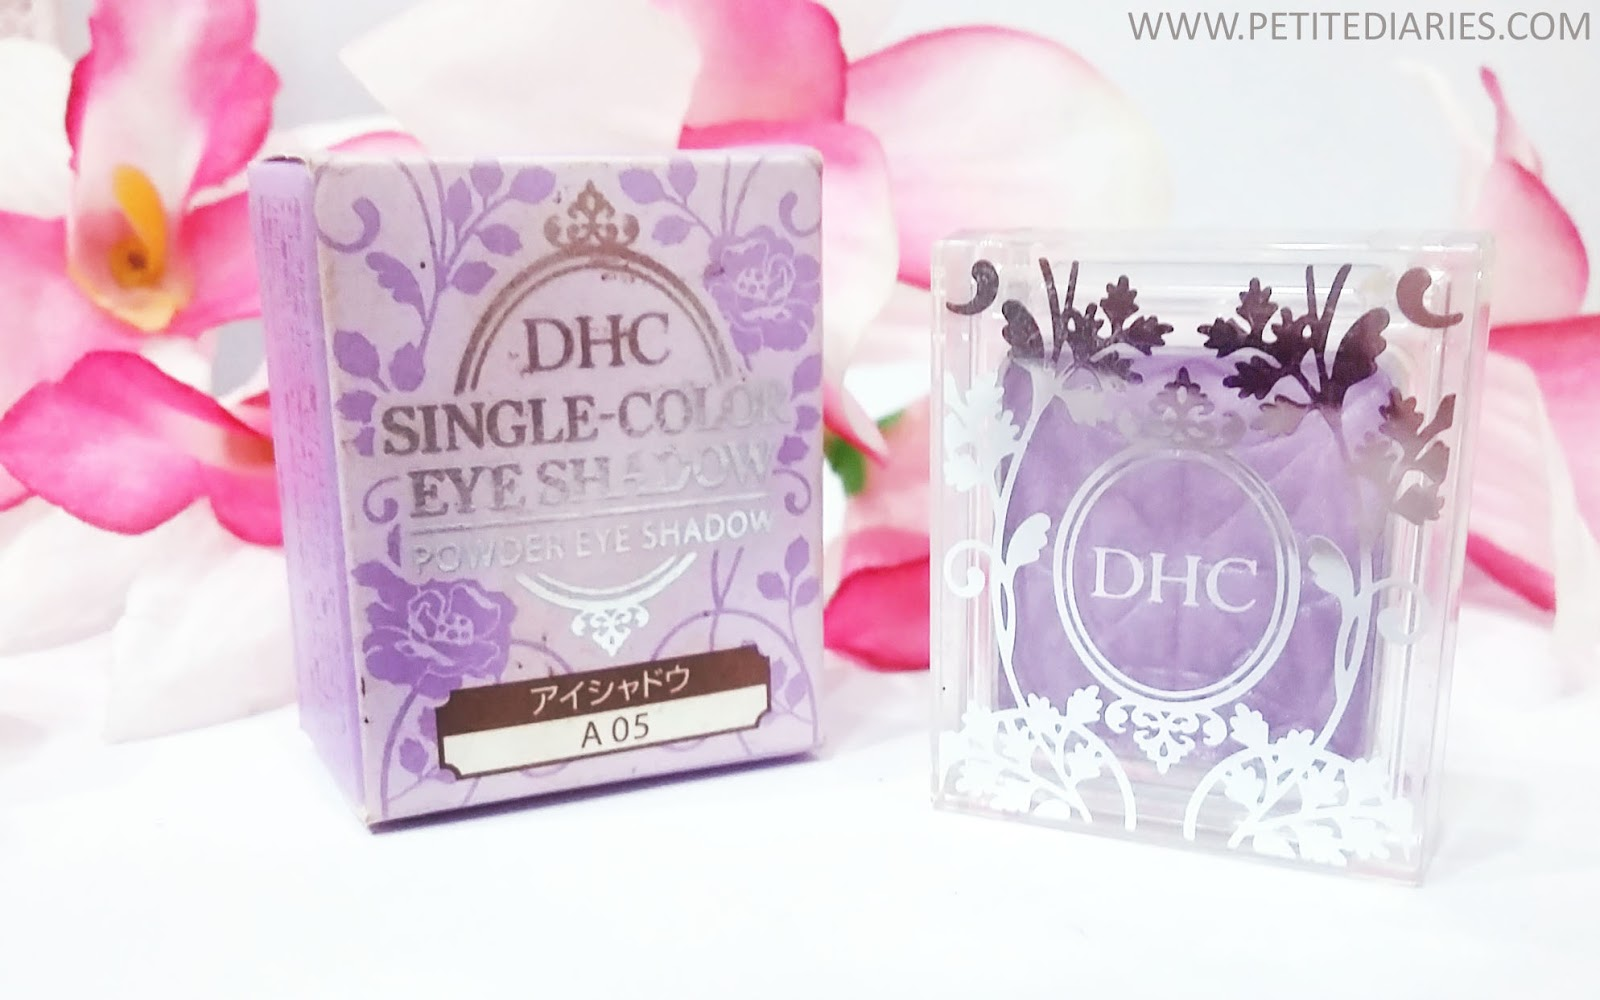 dhc single color eyeshadow purple japan